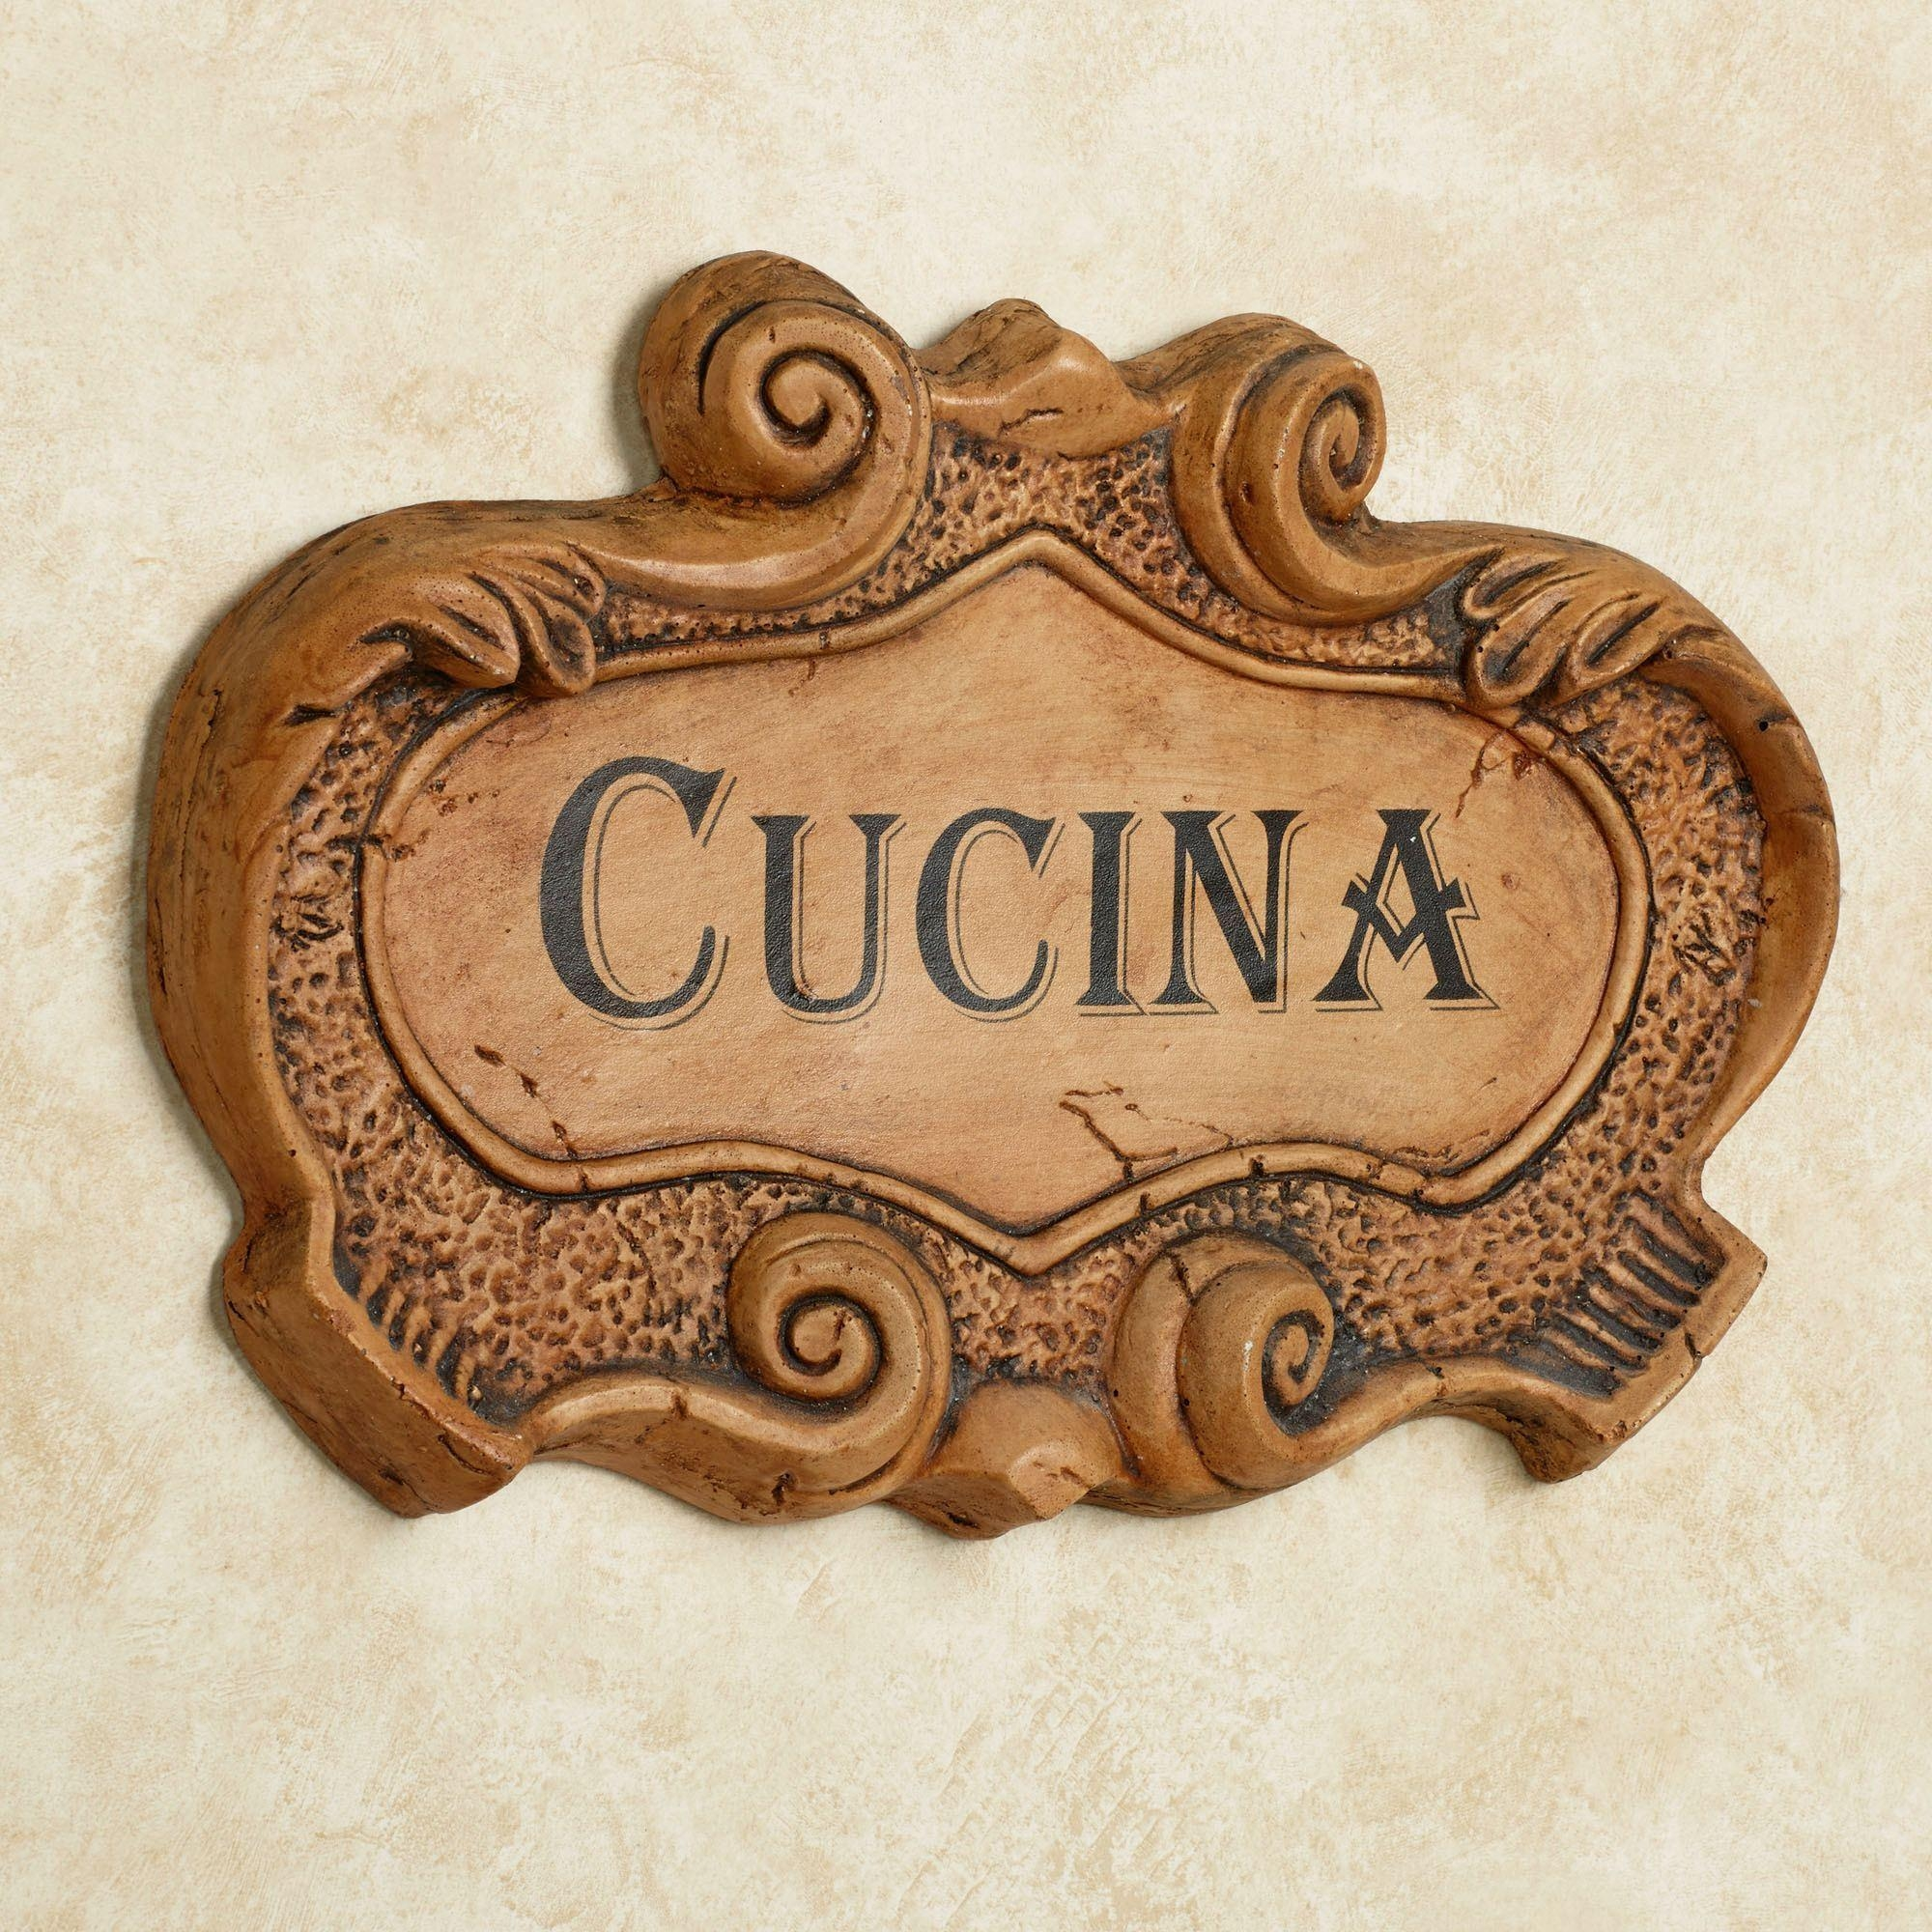 Wall Plaques | Touch Of Class Intended For Cucina Wall Art (View 8 of 20)